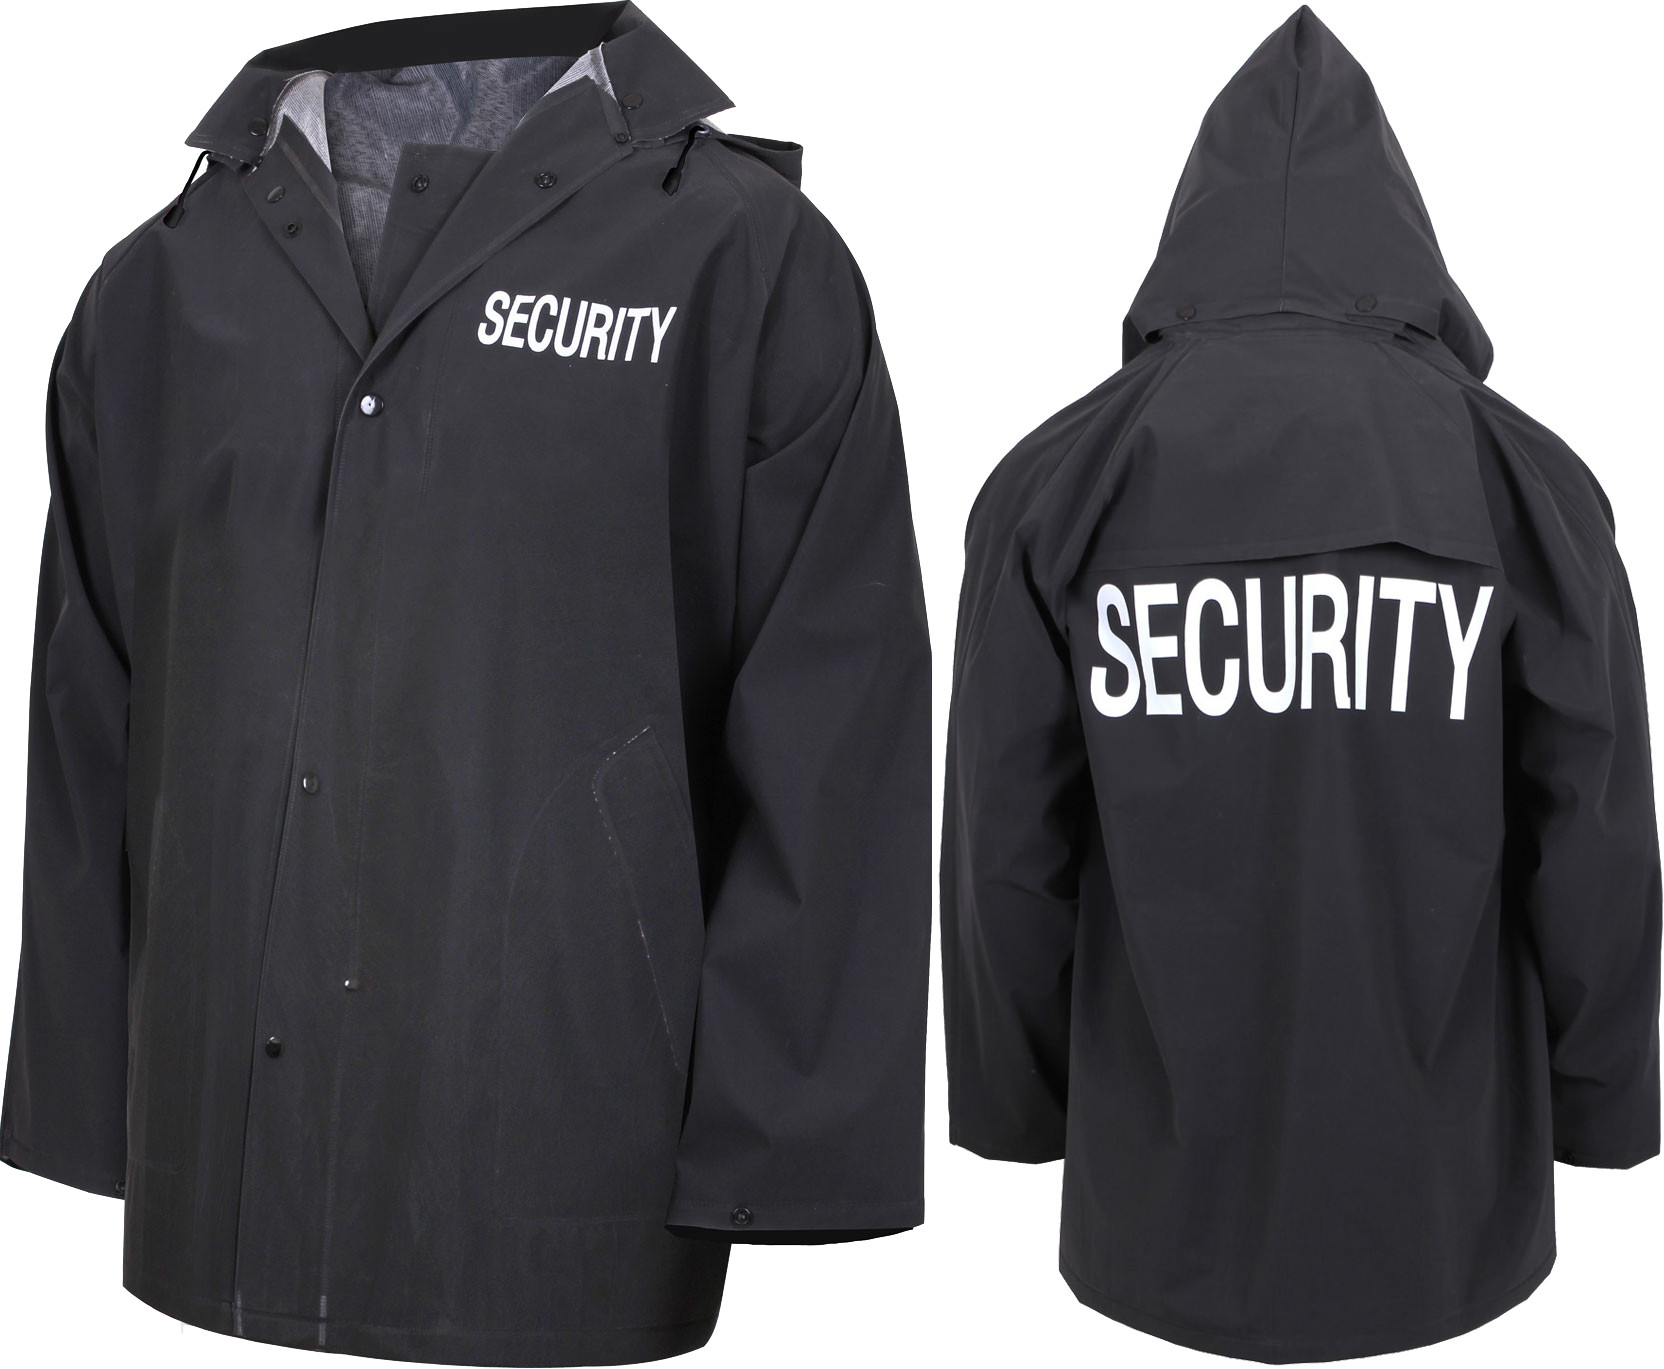 More Views. Black Double Sided Waterproof Security Rain Jacket ... 104fab926ce